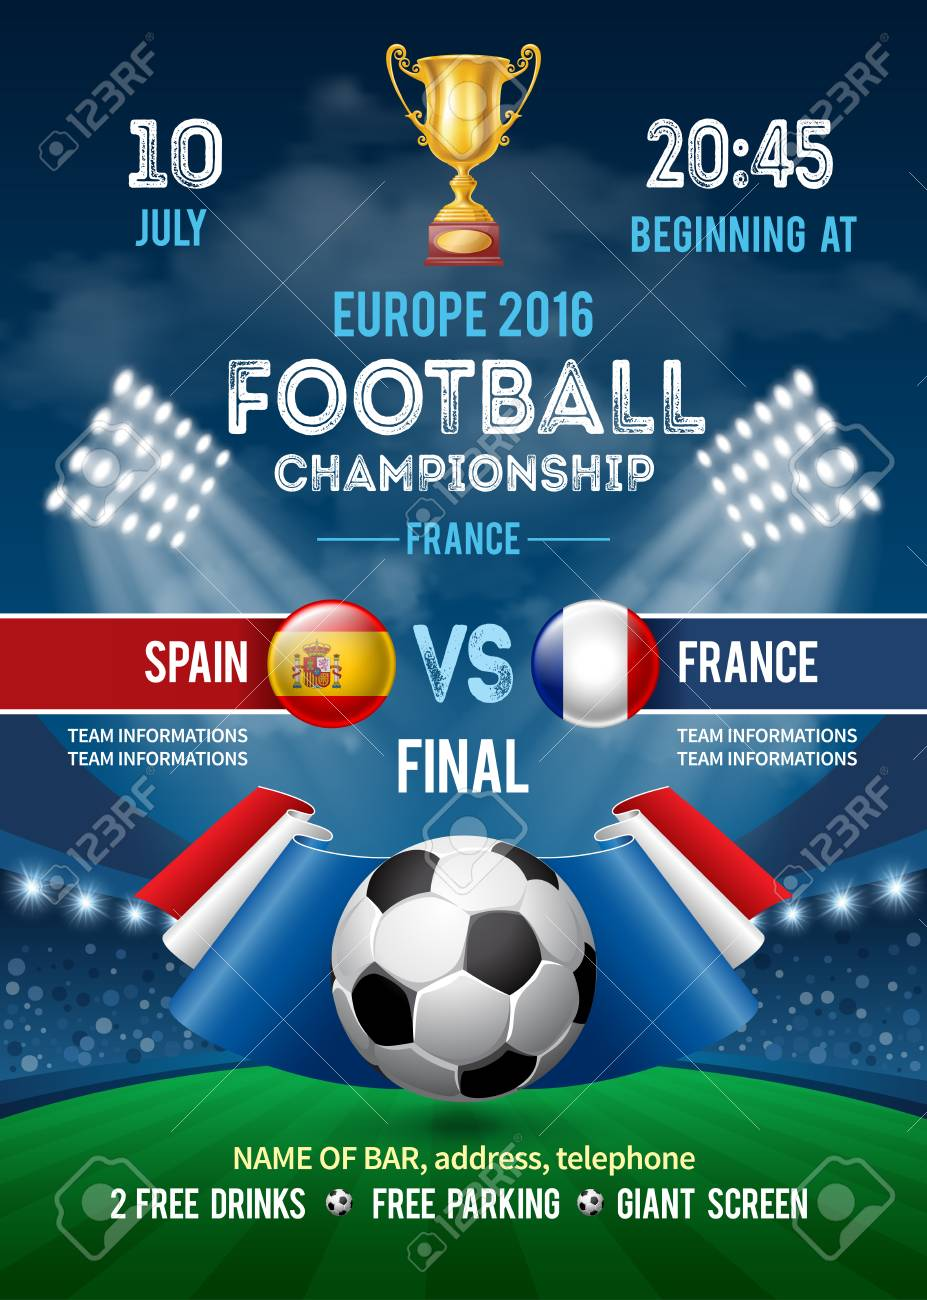 Poster template with Soccer Ball and flag of France on Stadium. Football championship in France. Soccer Cup Advertising. Sport Event Announcement. Place Your Text and Emblem of Participants. Vector Illustration. - 69204985